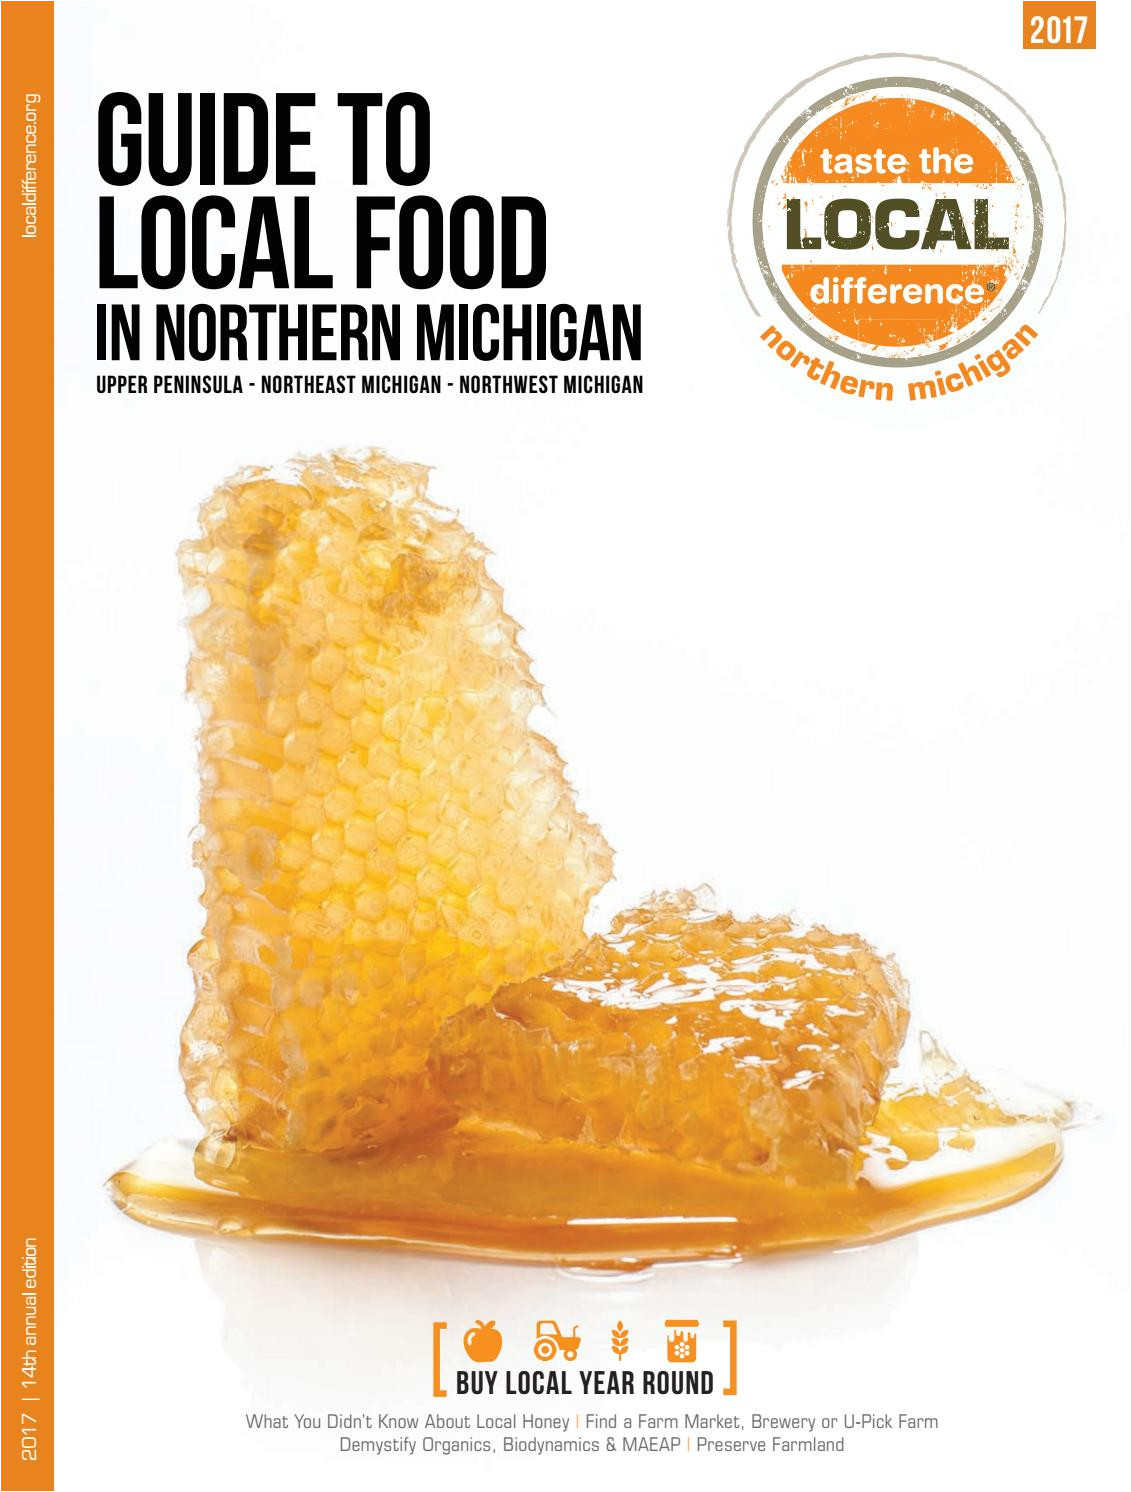 Toms Food Market Munson Ave Taste the Local Difference 2017 by Mynorth issuu